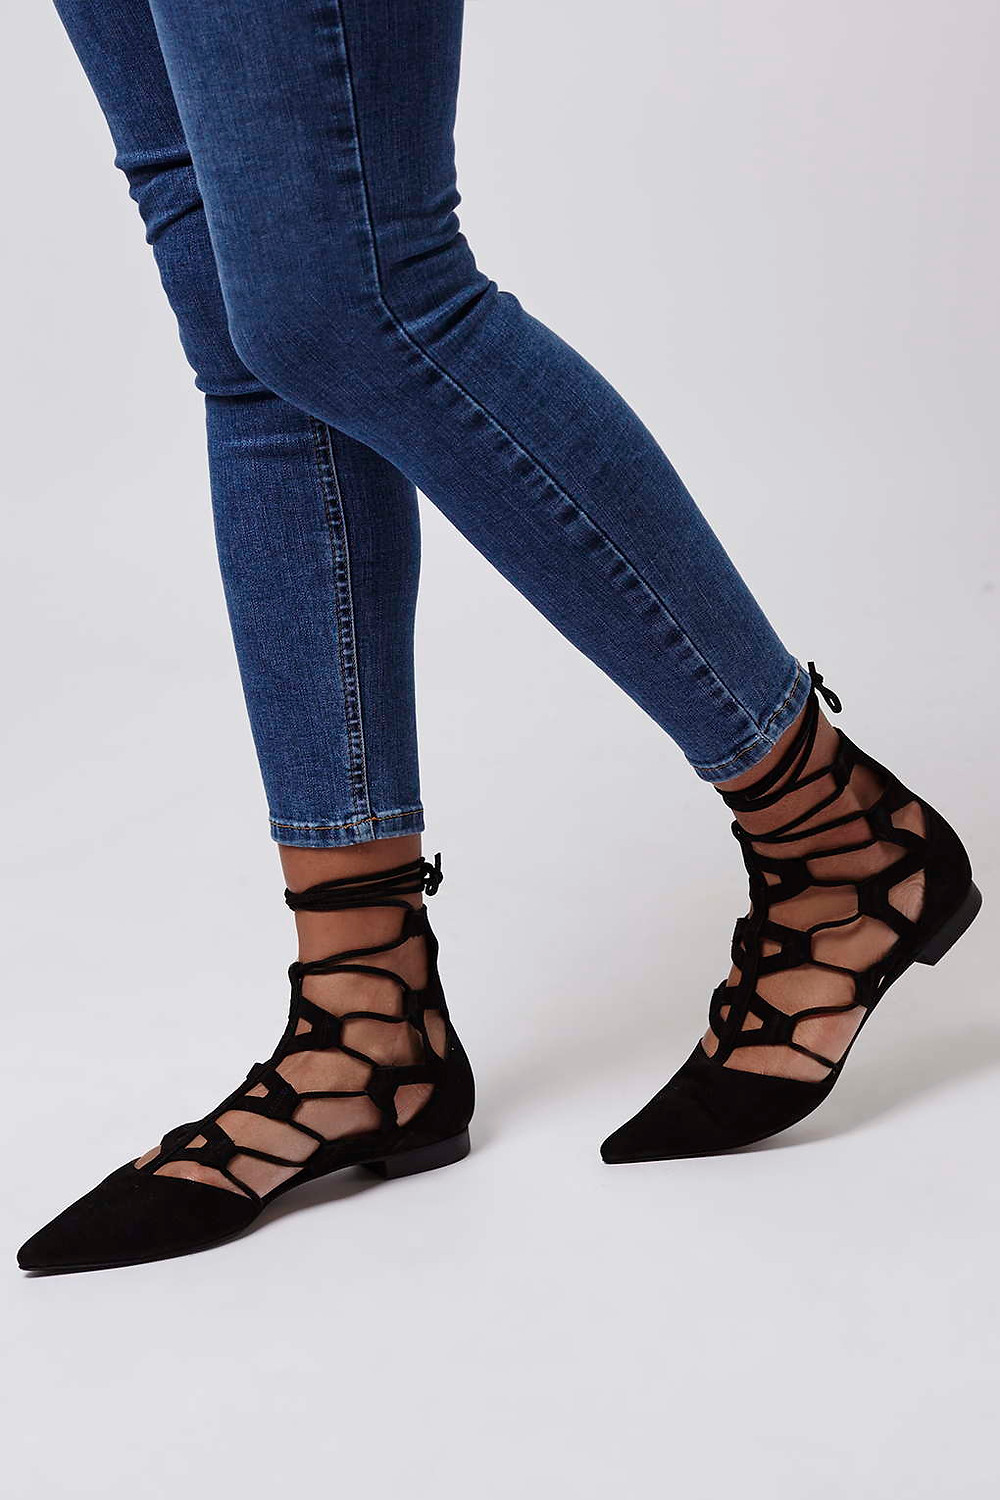 Topshop Limited Edition POSY Ghillies-$180